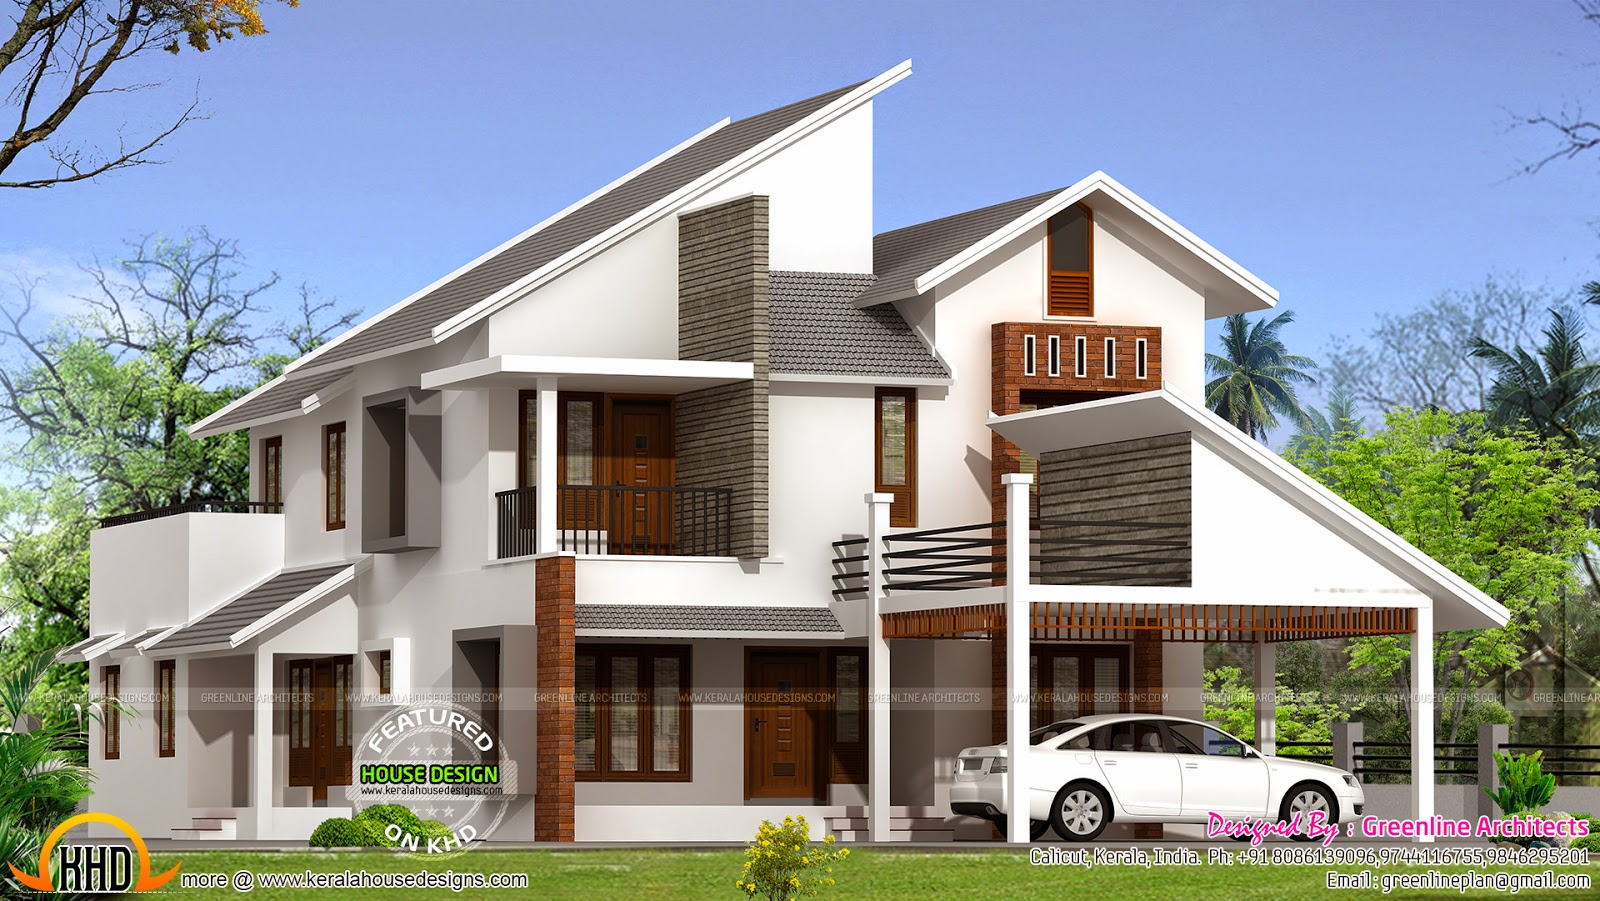 New modern house plan kerala home design and floor plans for New house